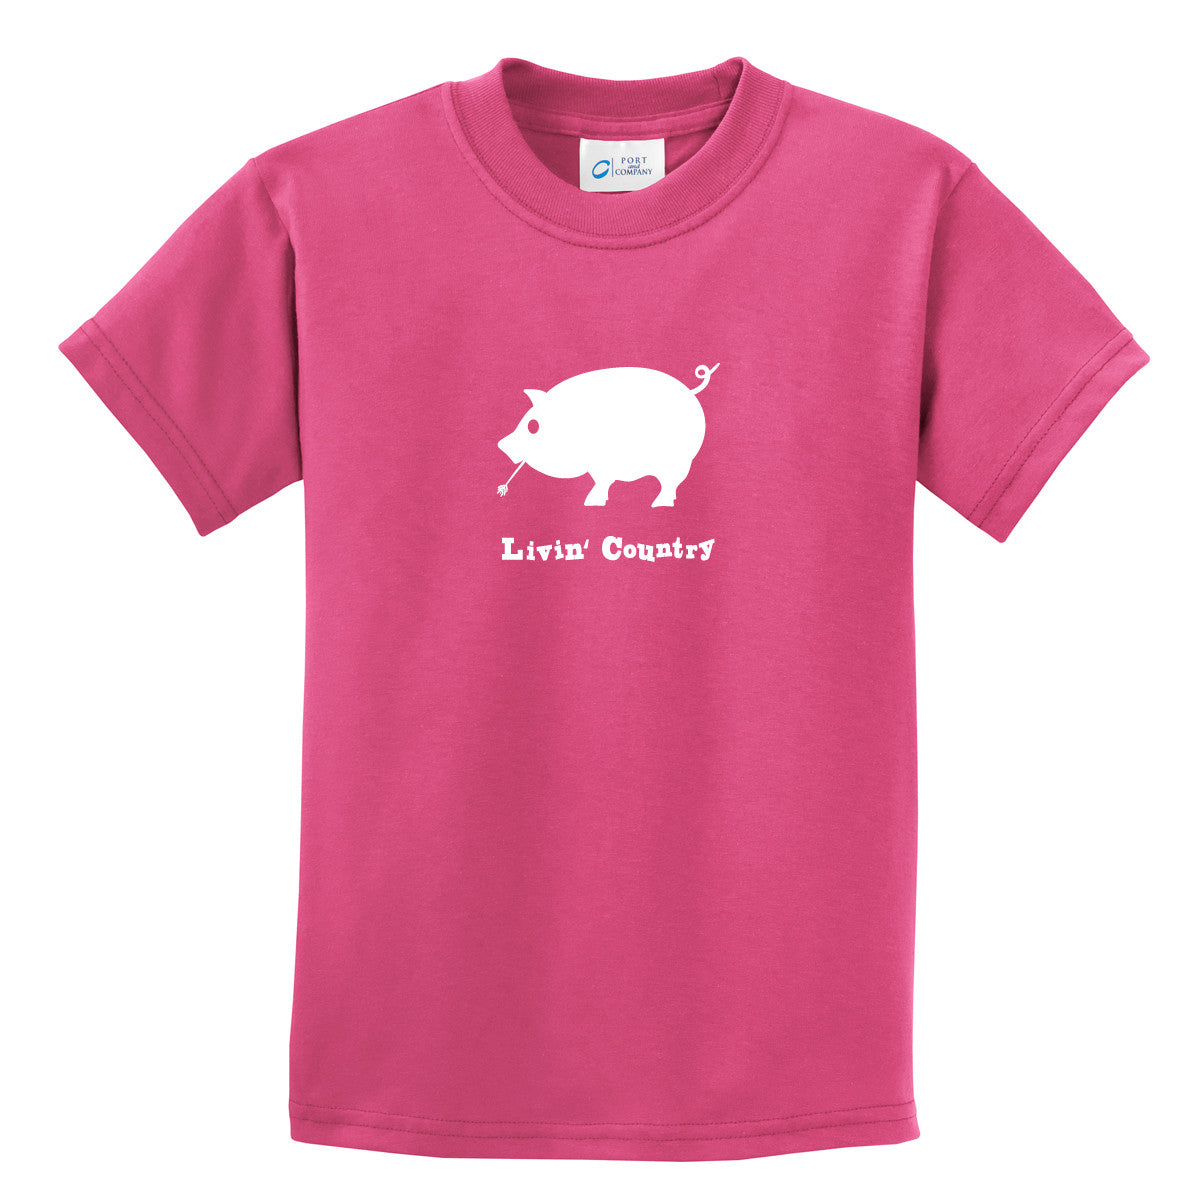 Kid's Livin' Country Pig T-shirt - Livin' Country Apparel & Accessories  - 1